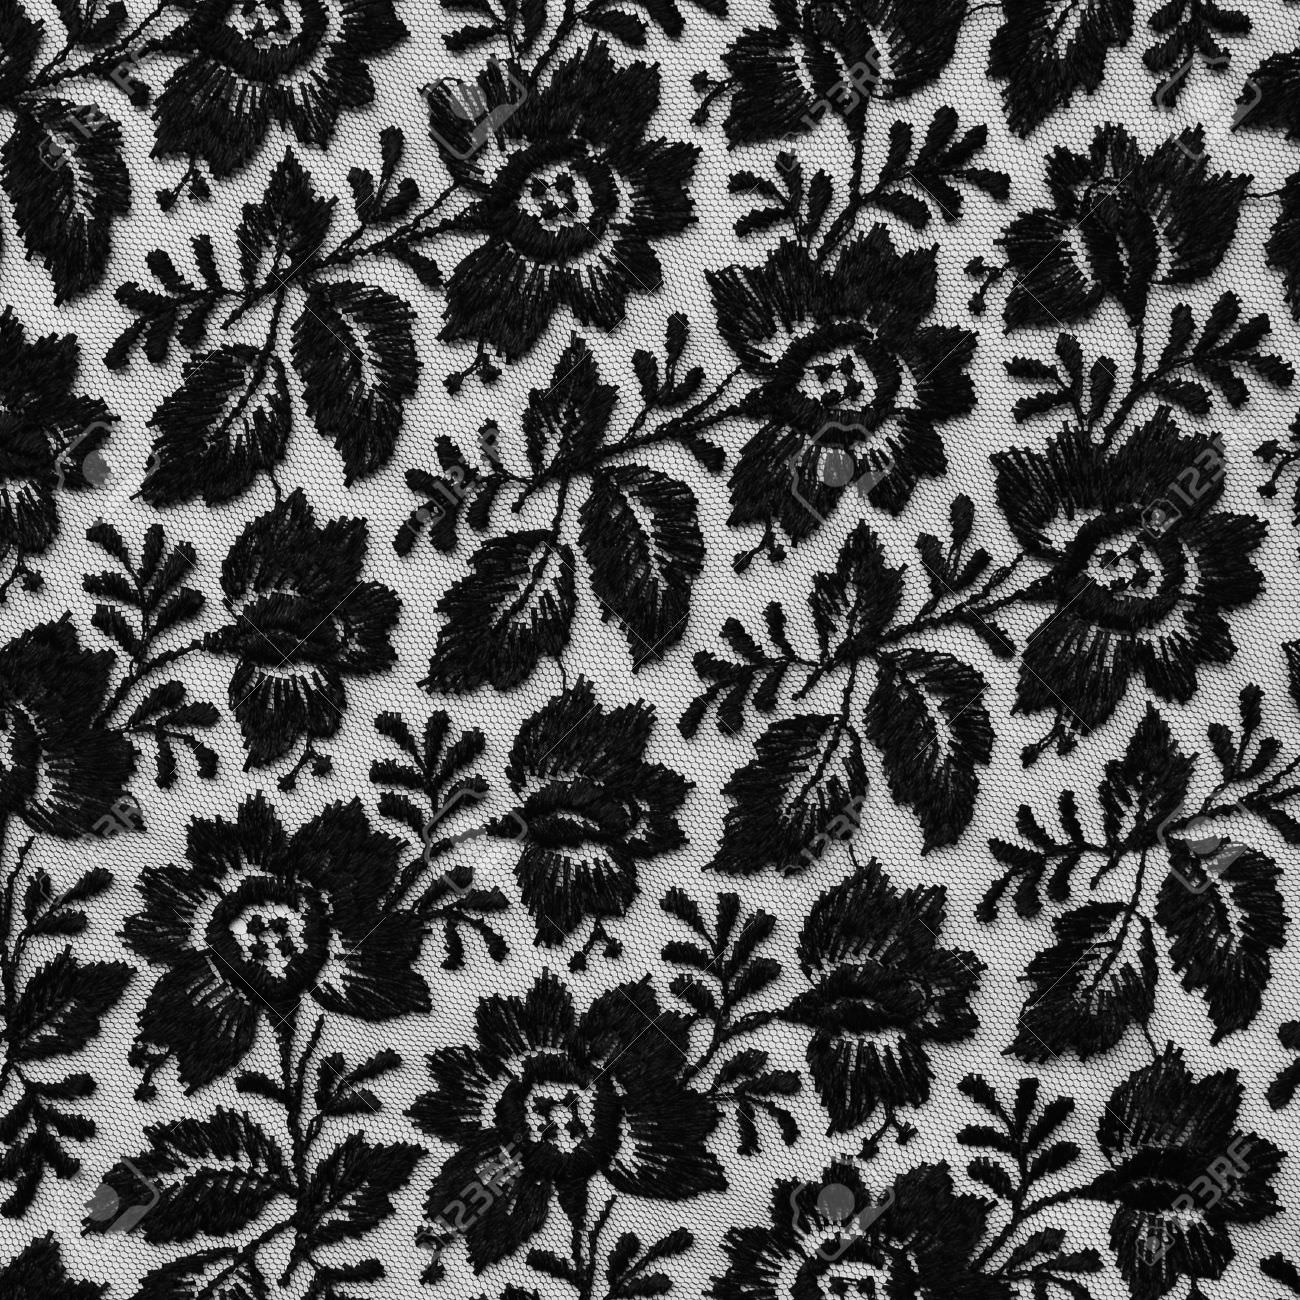 Black Lace Fabric Texture Design